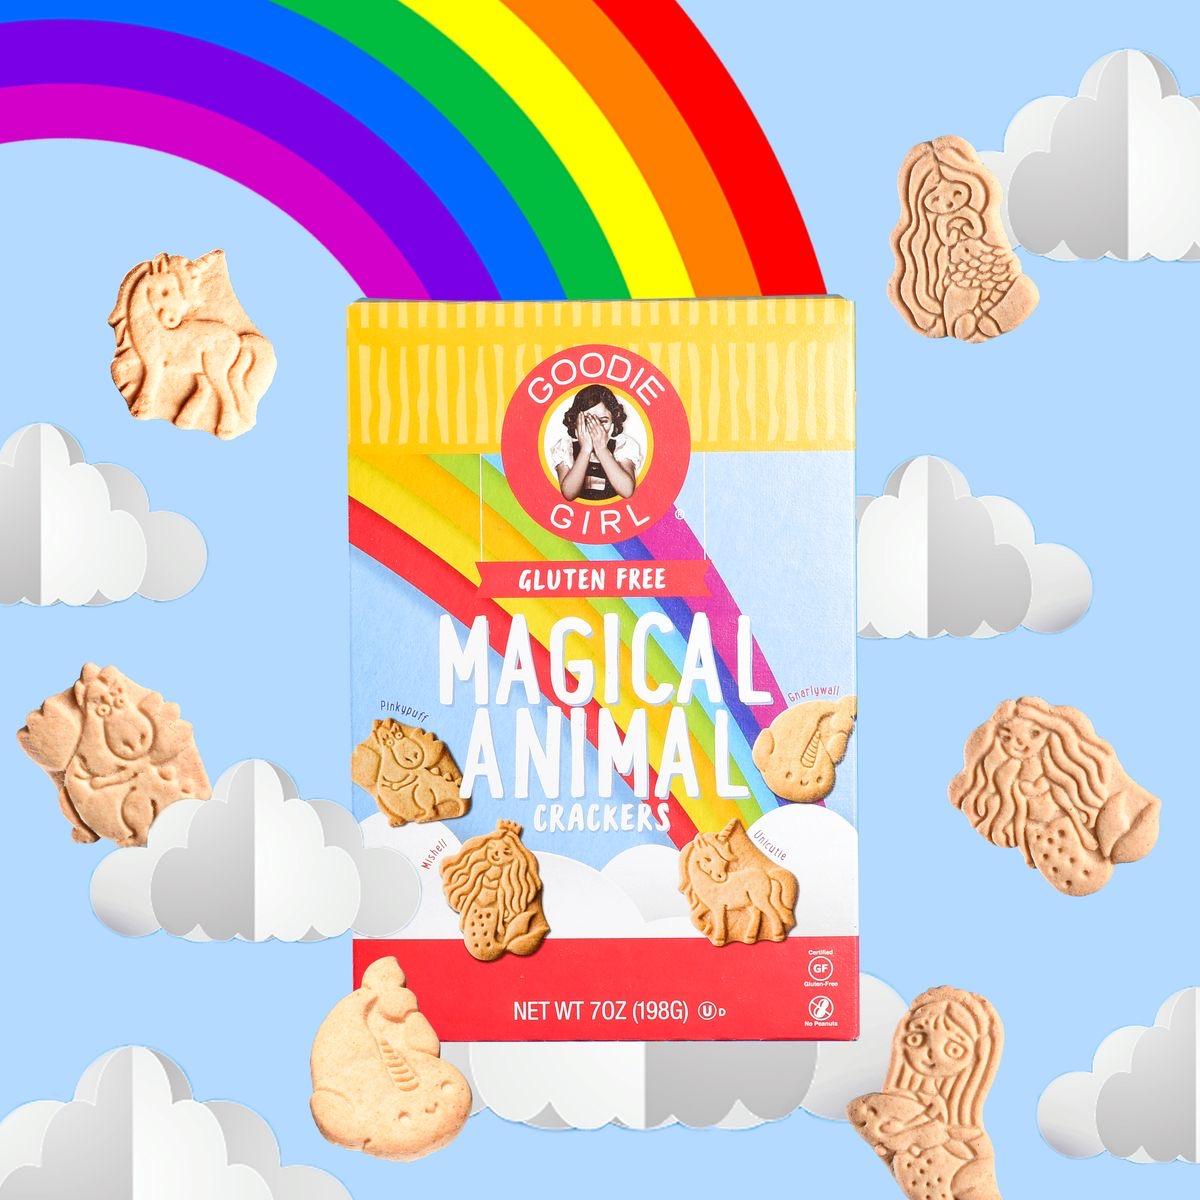 Goodie GIrl Cookies magical animal crackers